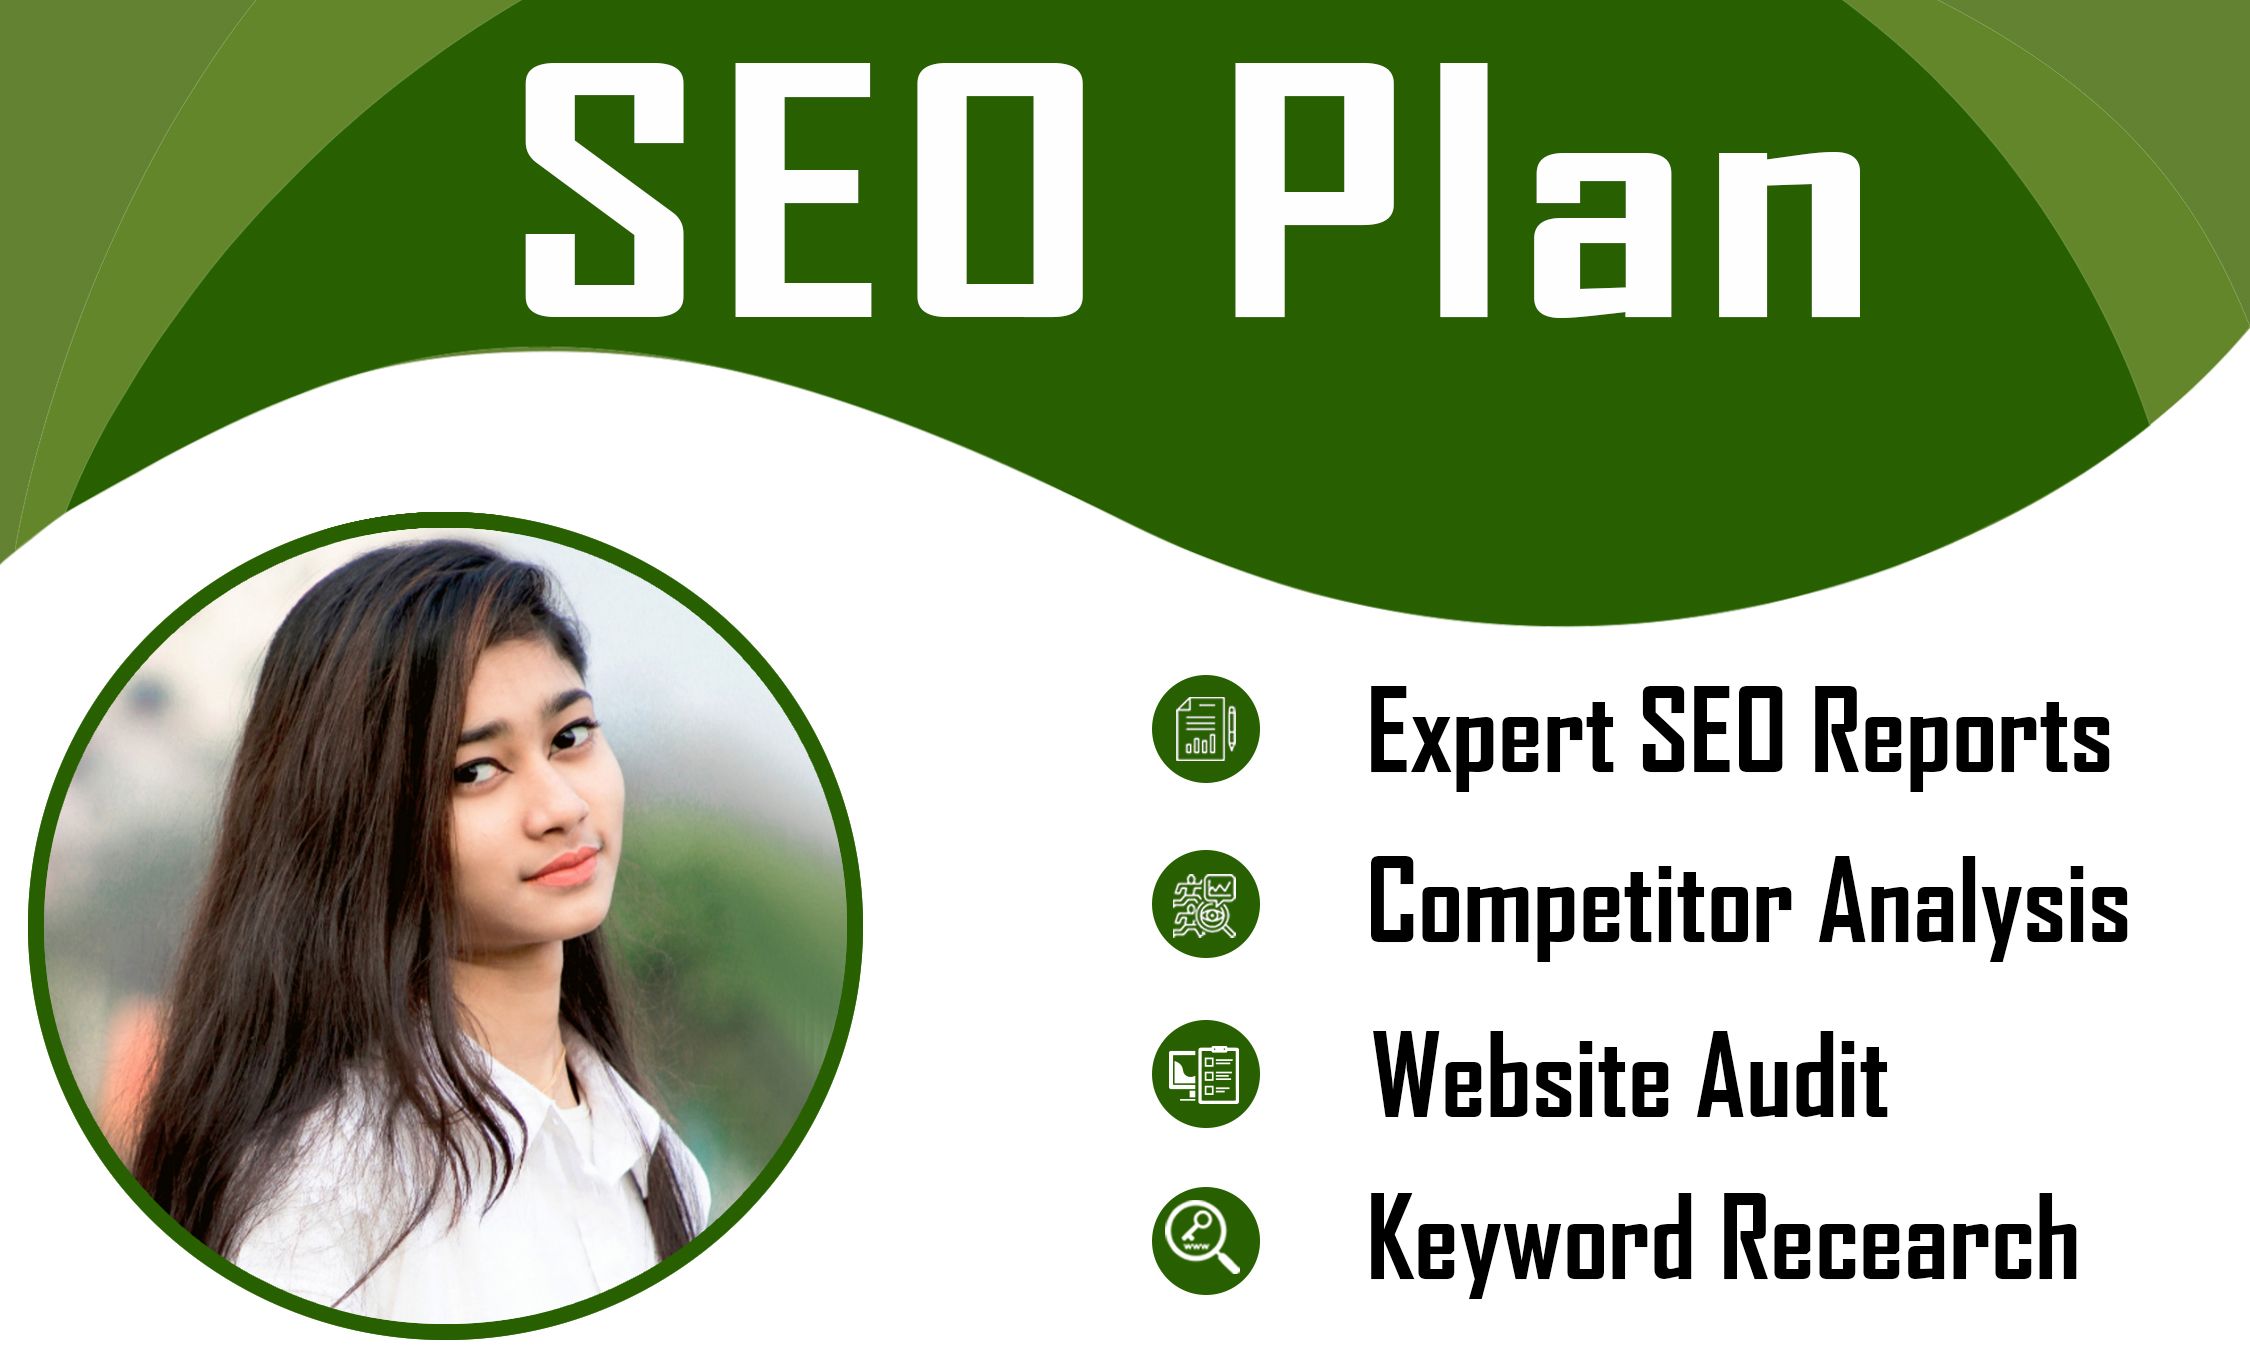 I will Provide expert SEO reports competitor analysis website audit